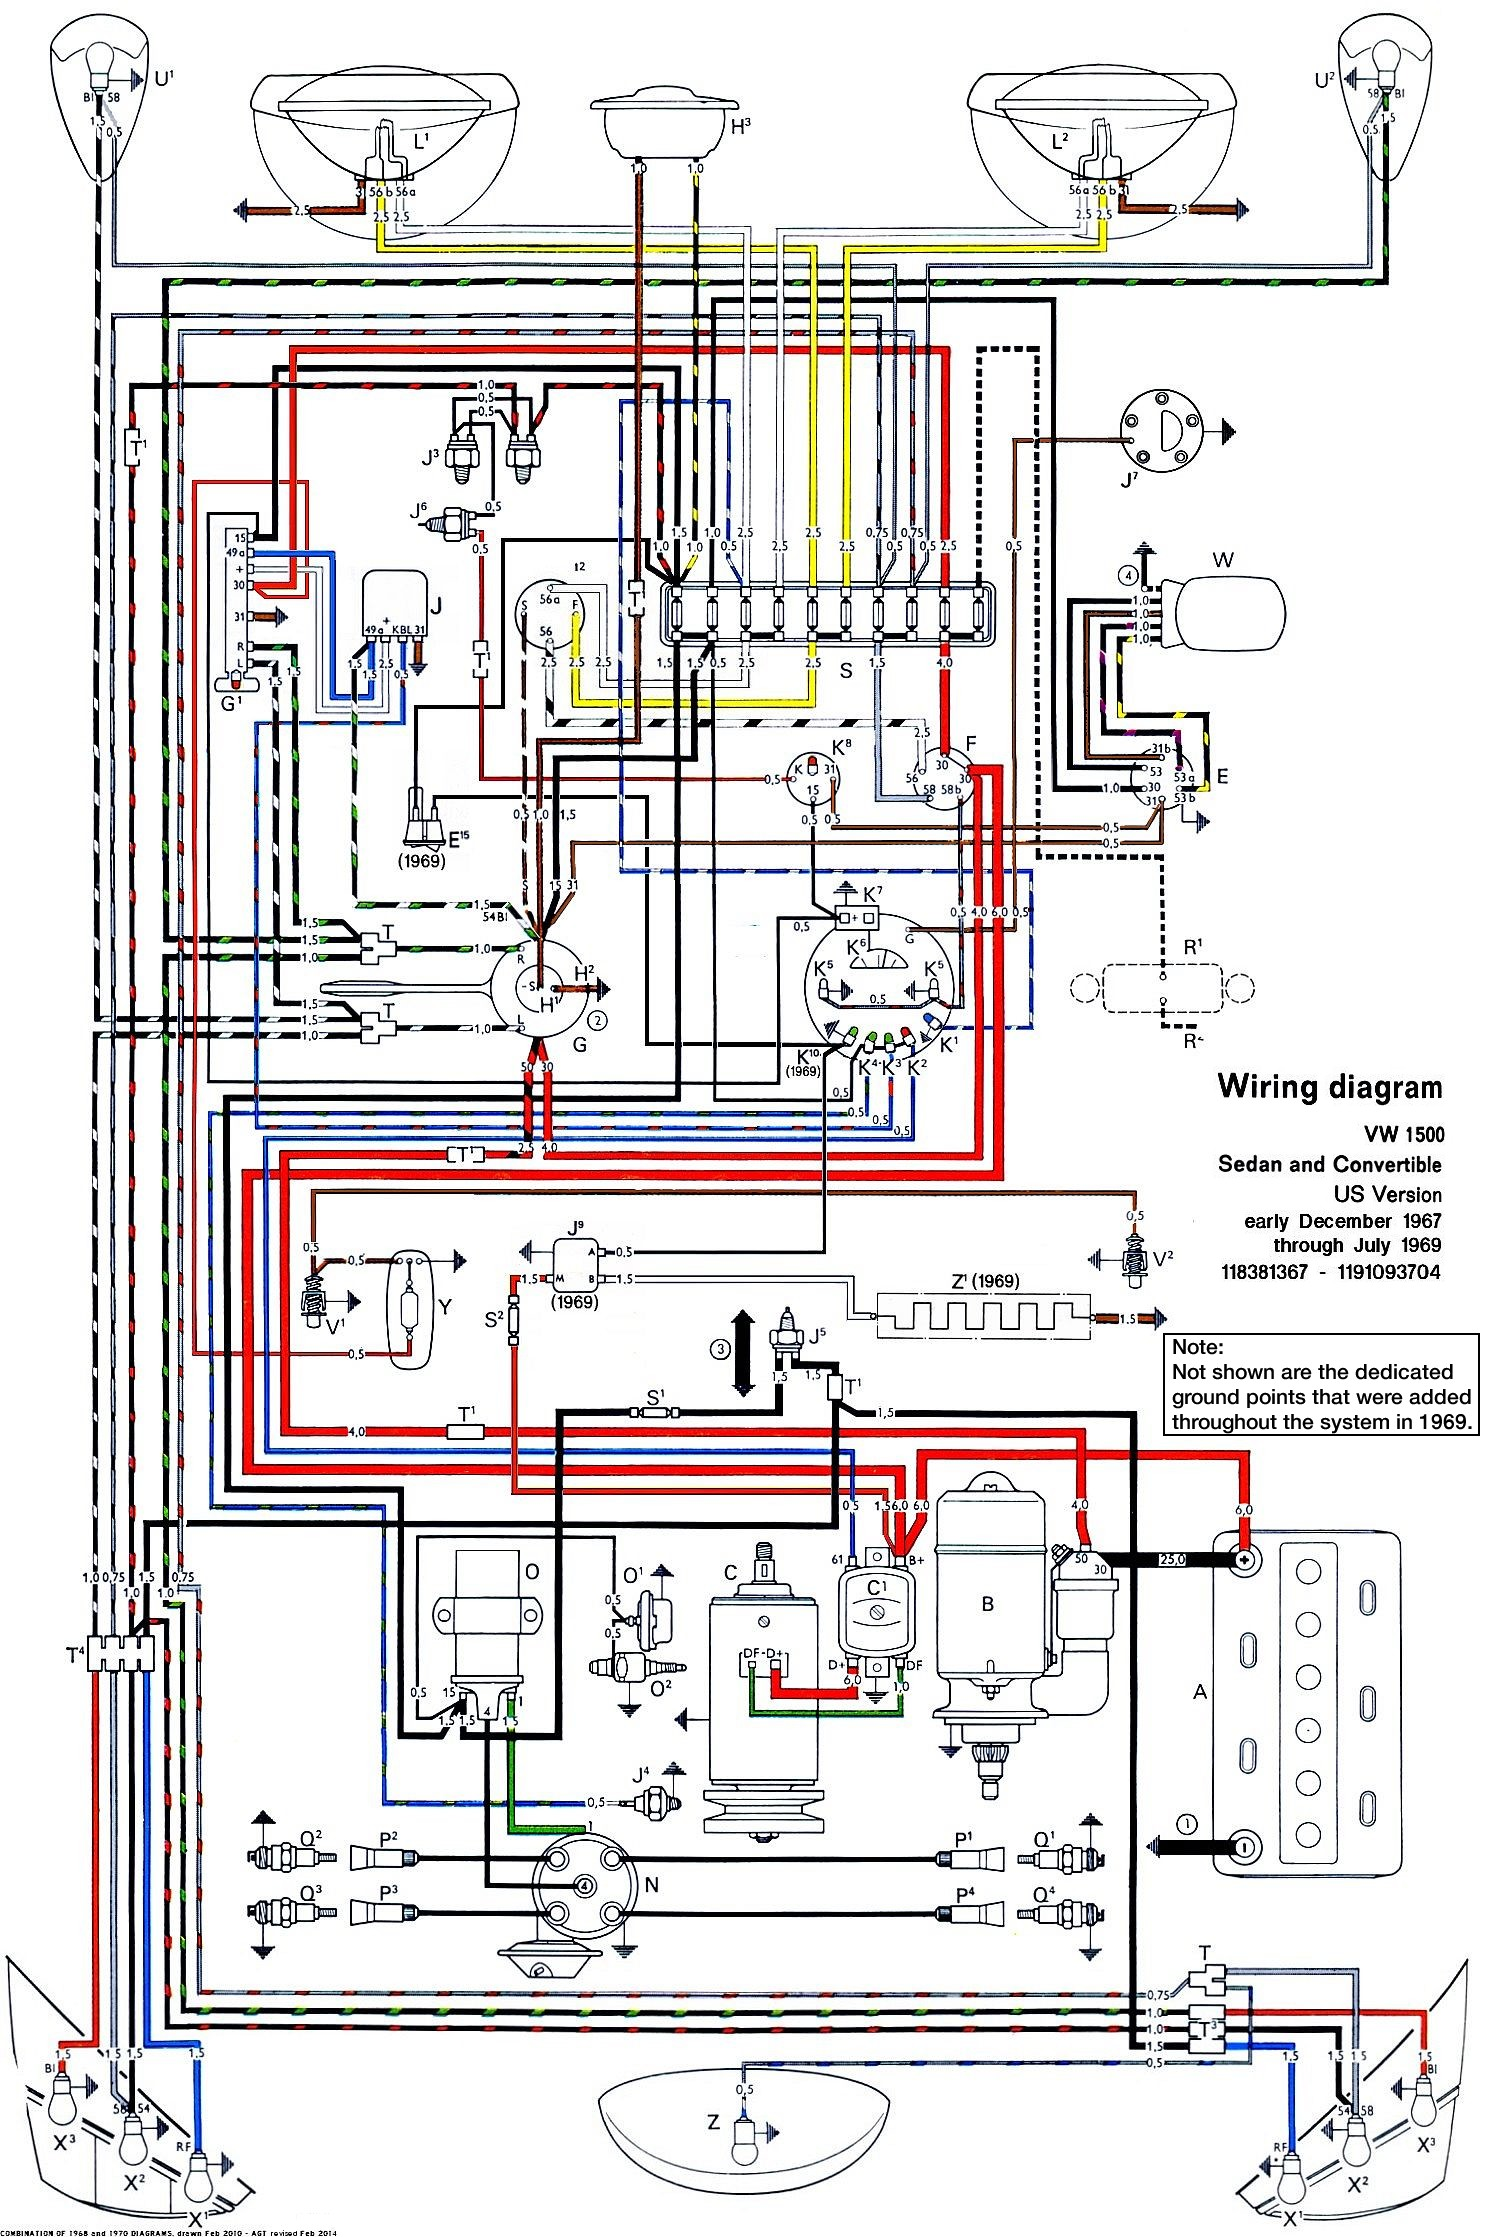 Wiring Diagram For 1967 Vw Beetle : Type wiring diagram get free image about